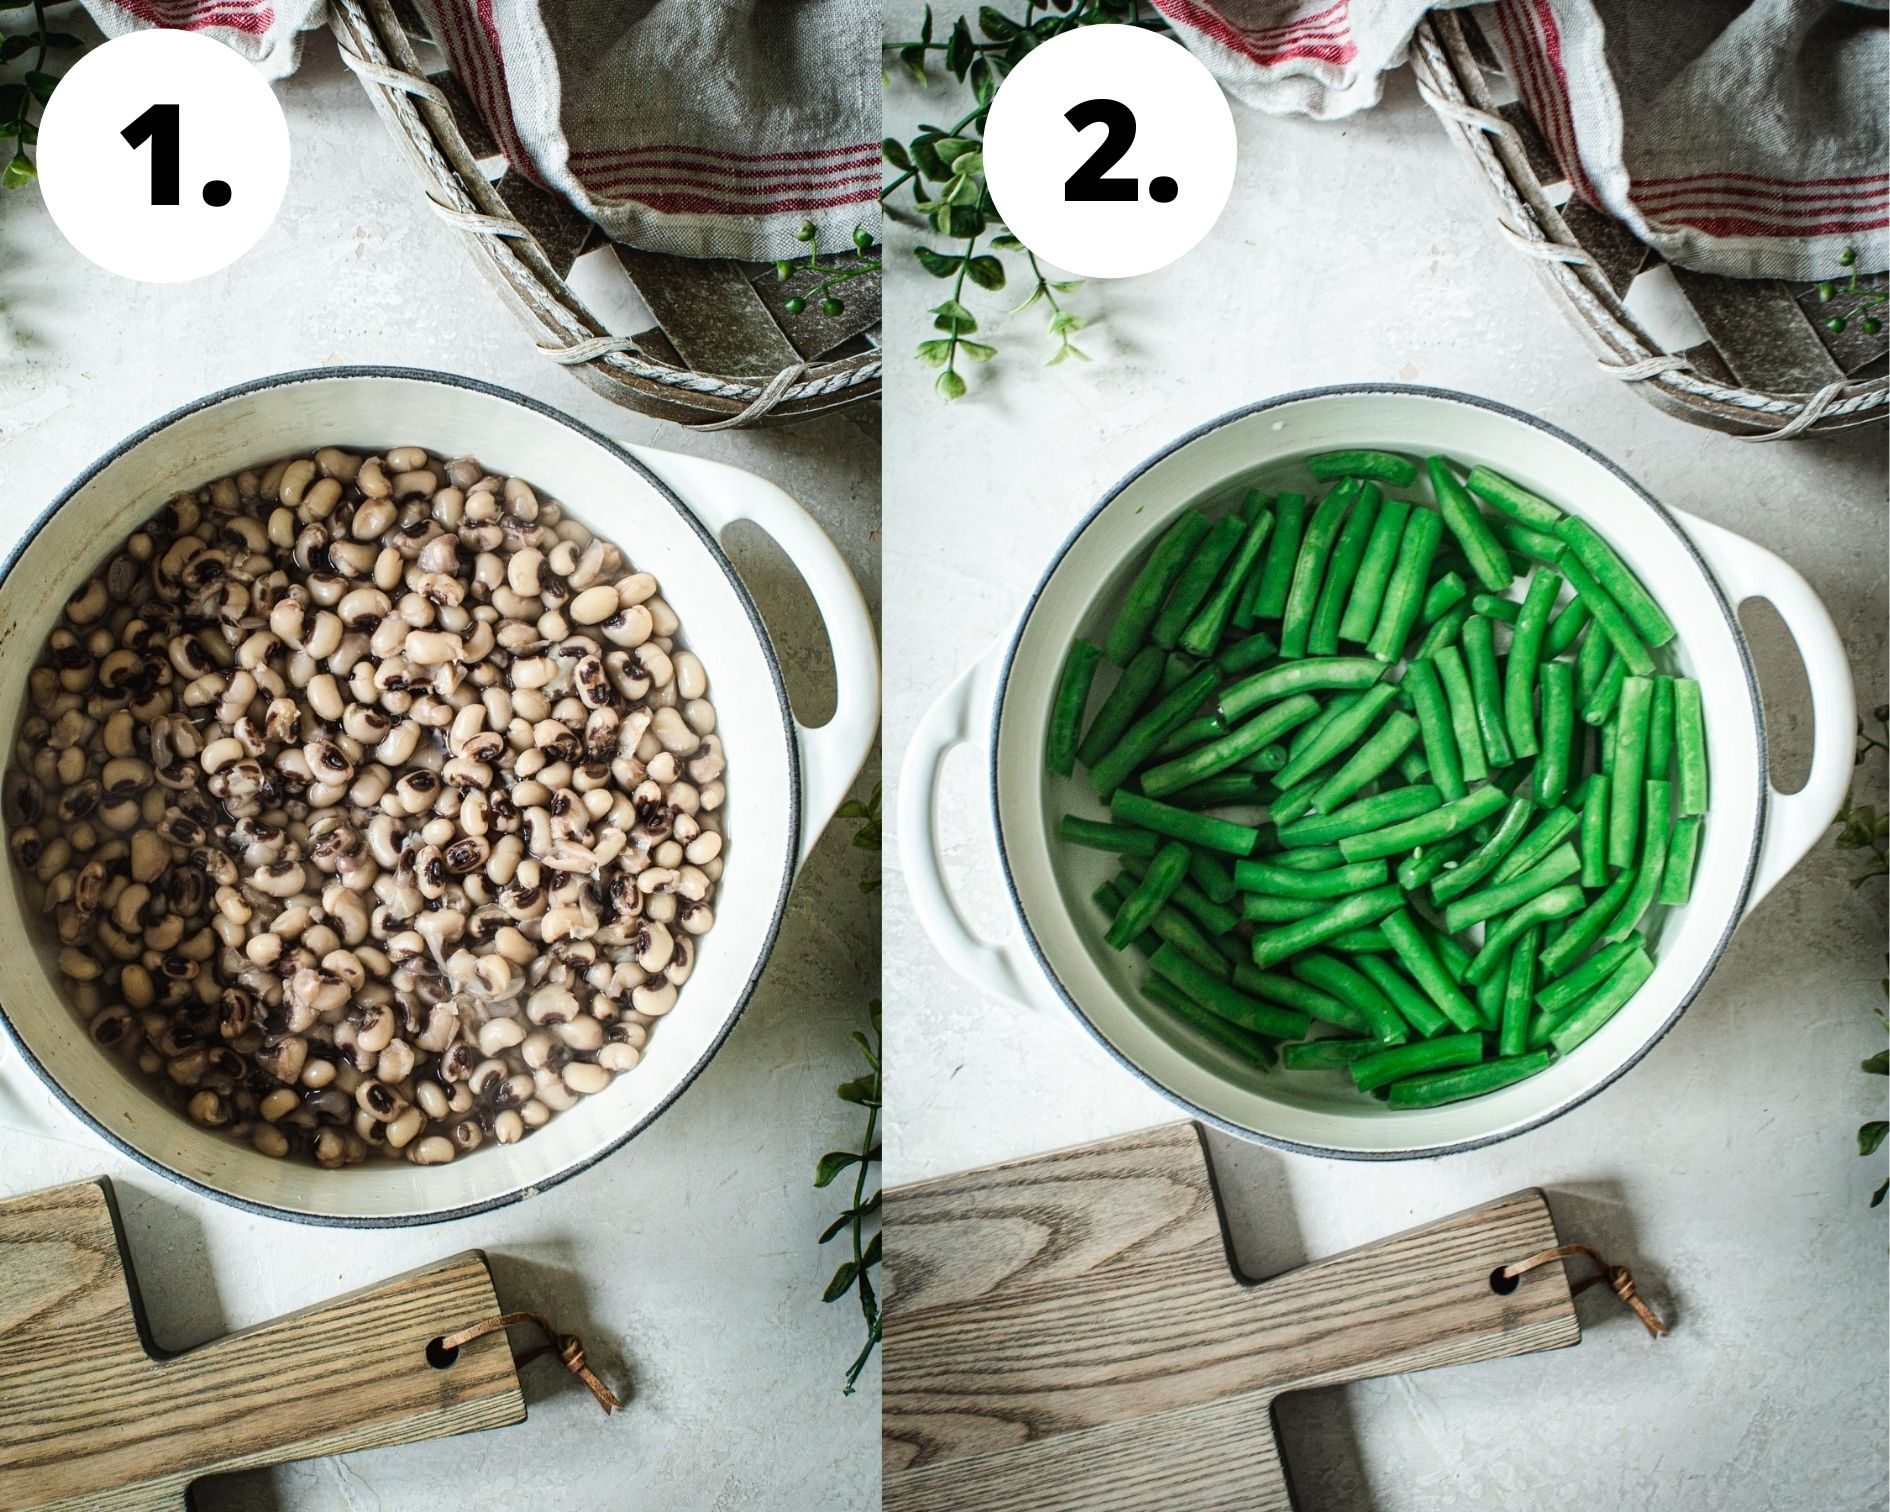 Pickled three bean salad process steps 1 and 2.